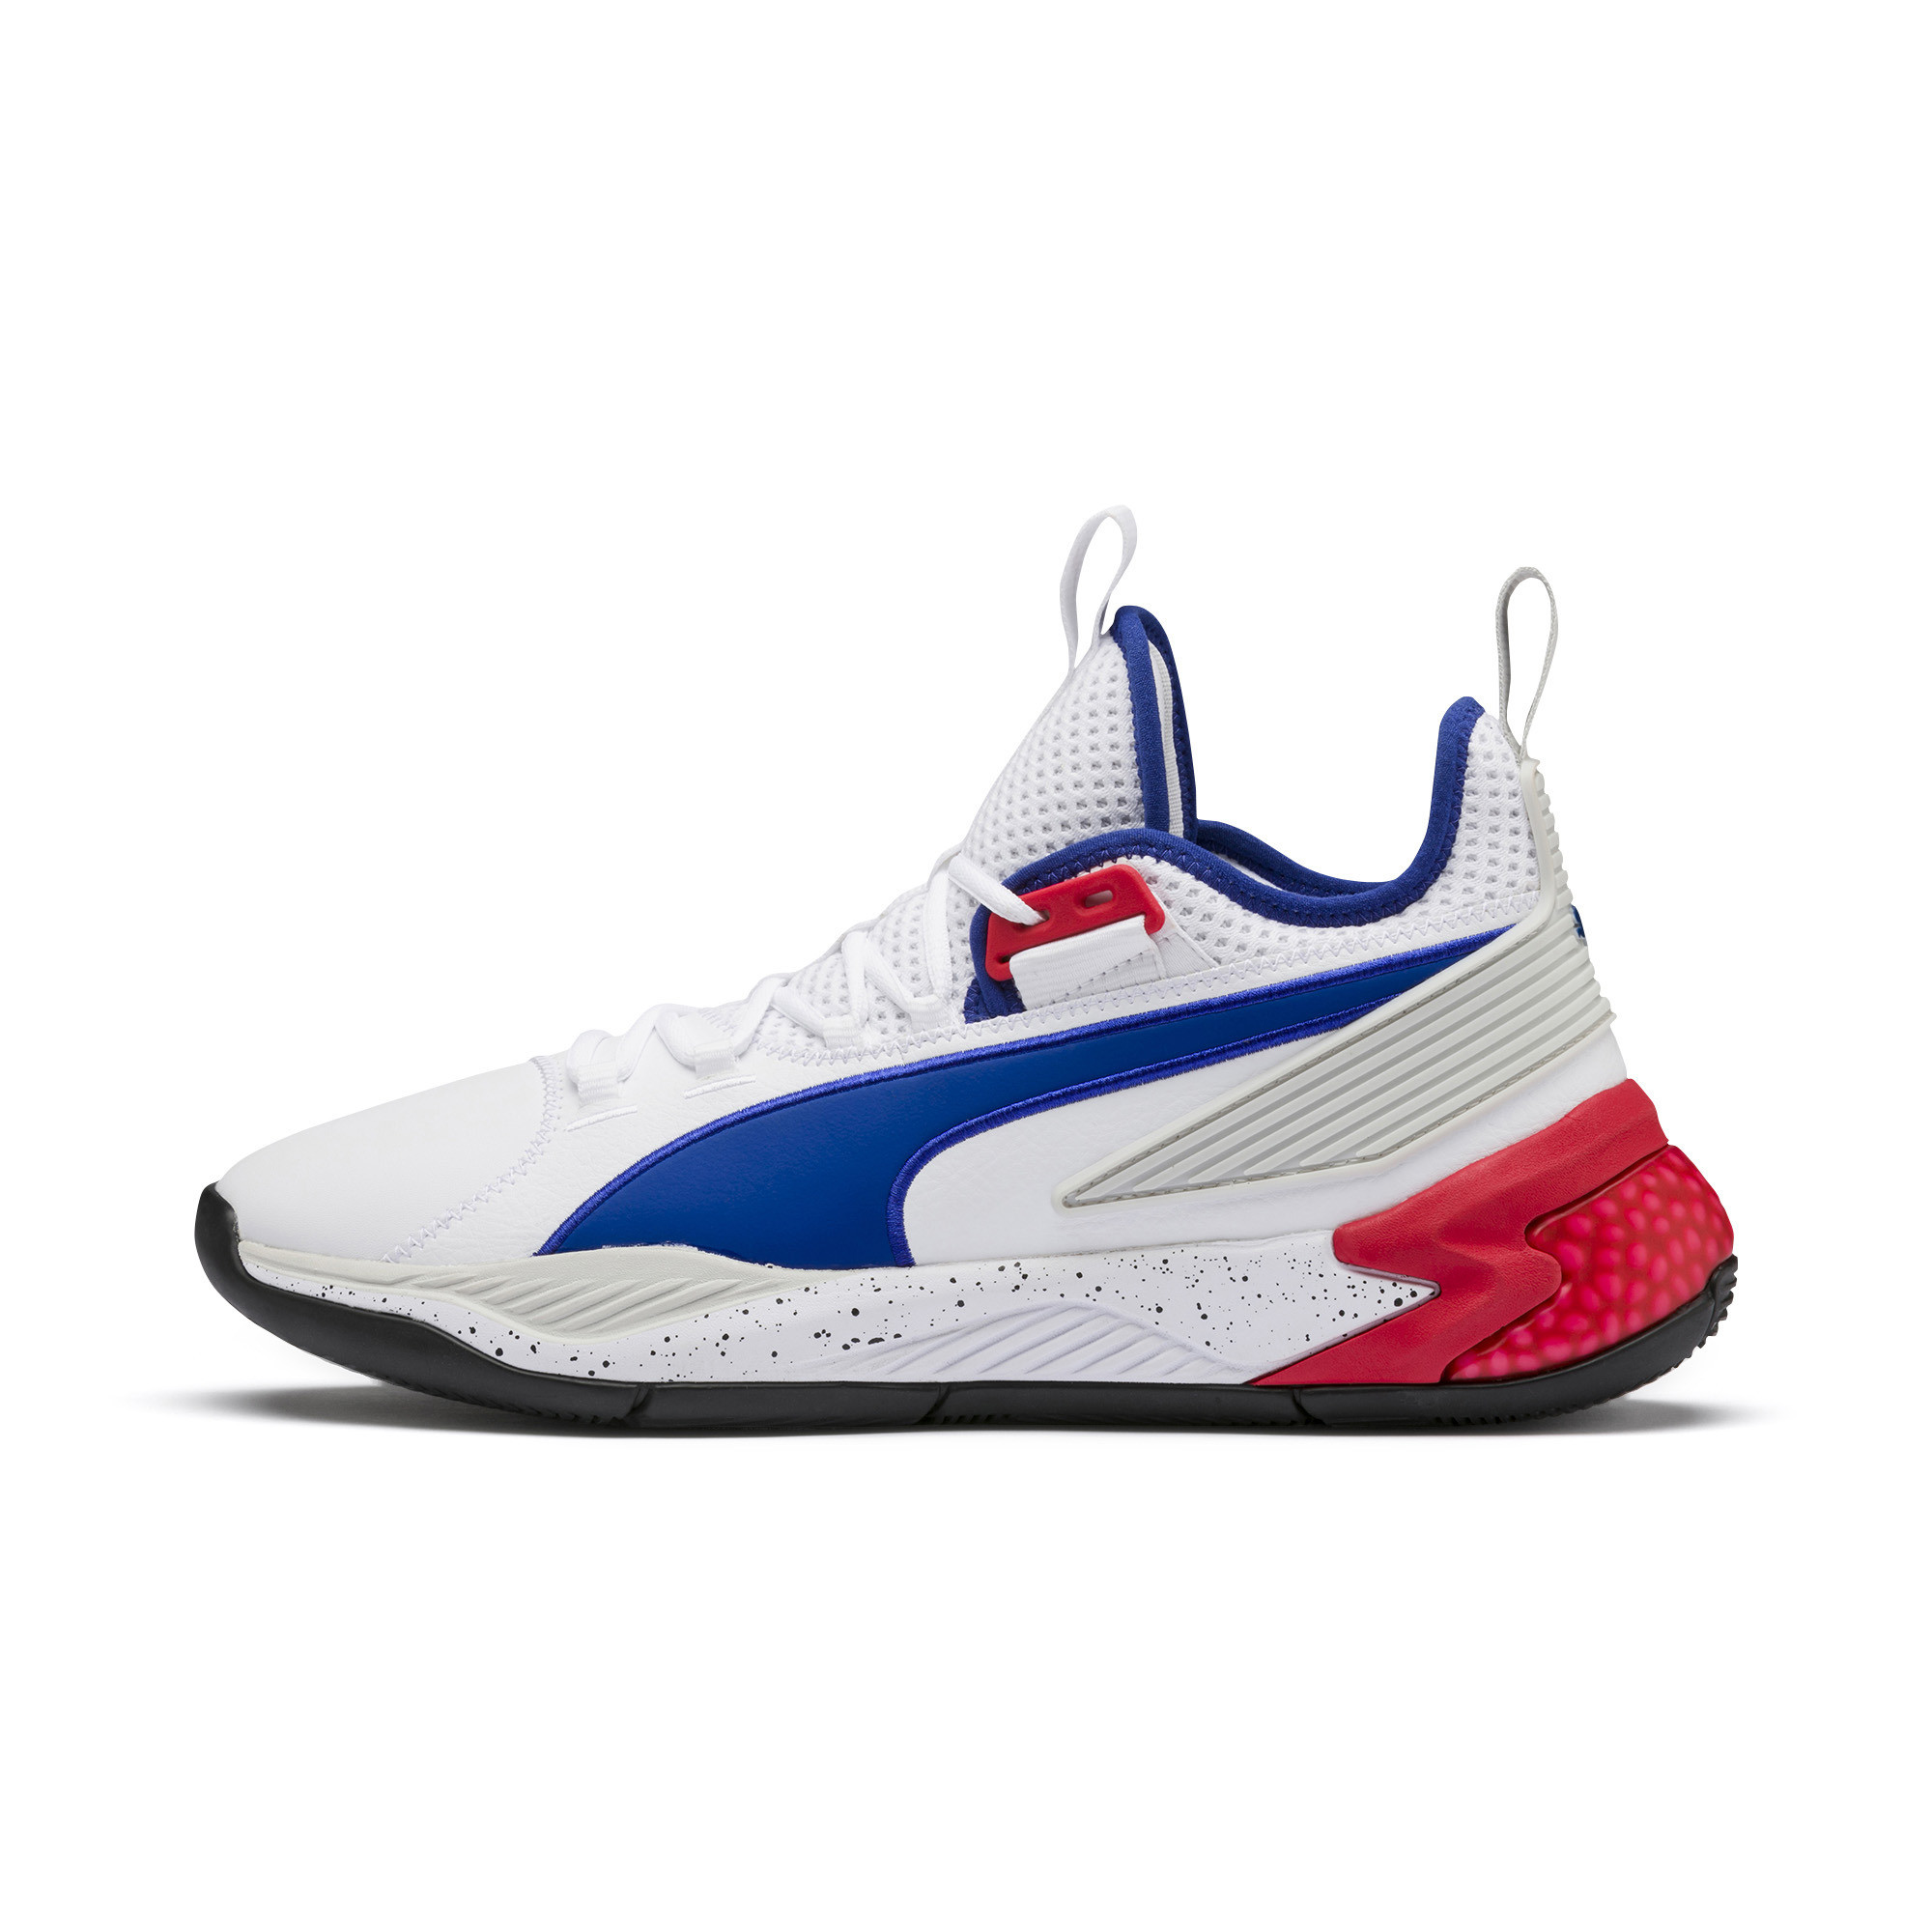 wholesale dealer 90701 fb7bf PUMA® Men's Shoes for Running, Sneakers, Clothing & More